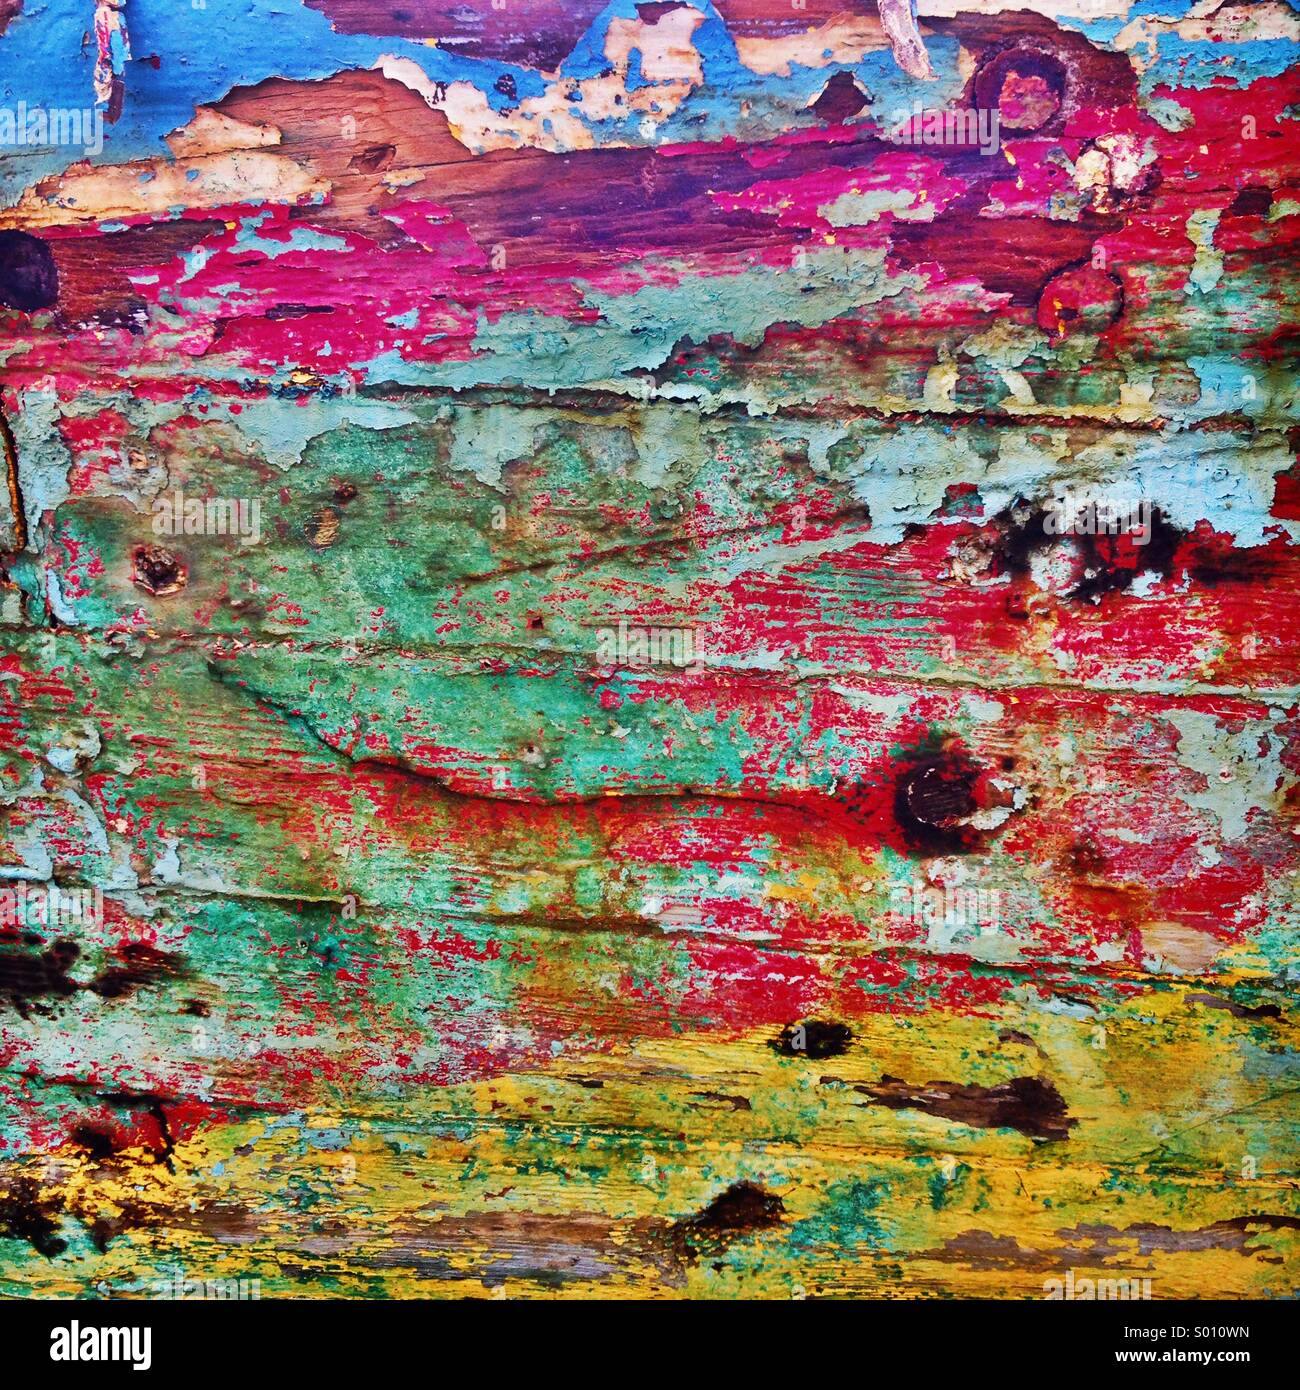 Distressed paint on abandoned wooden shipwreck - Stock Image